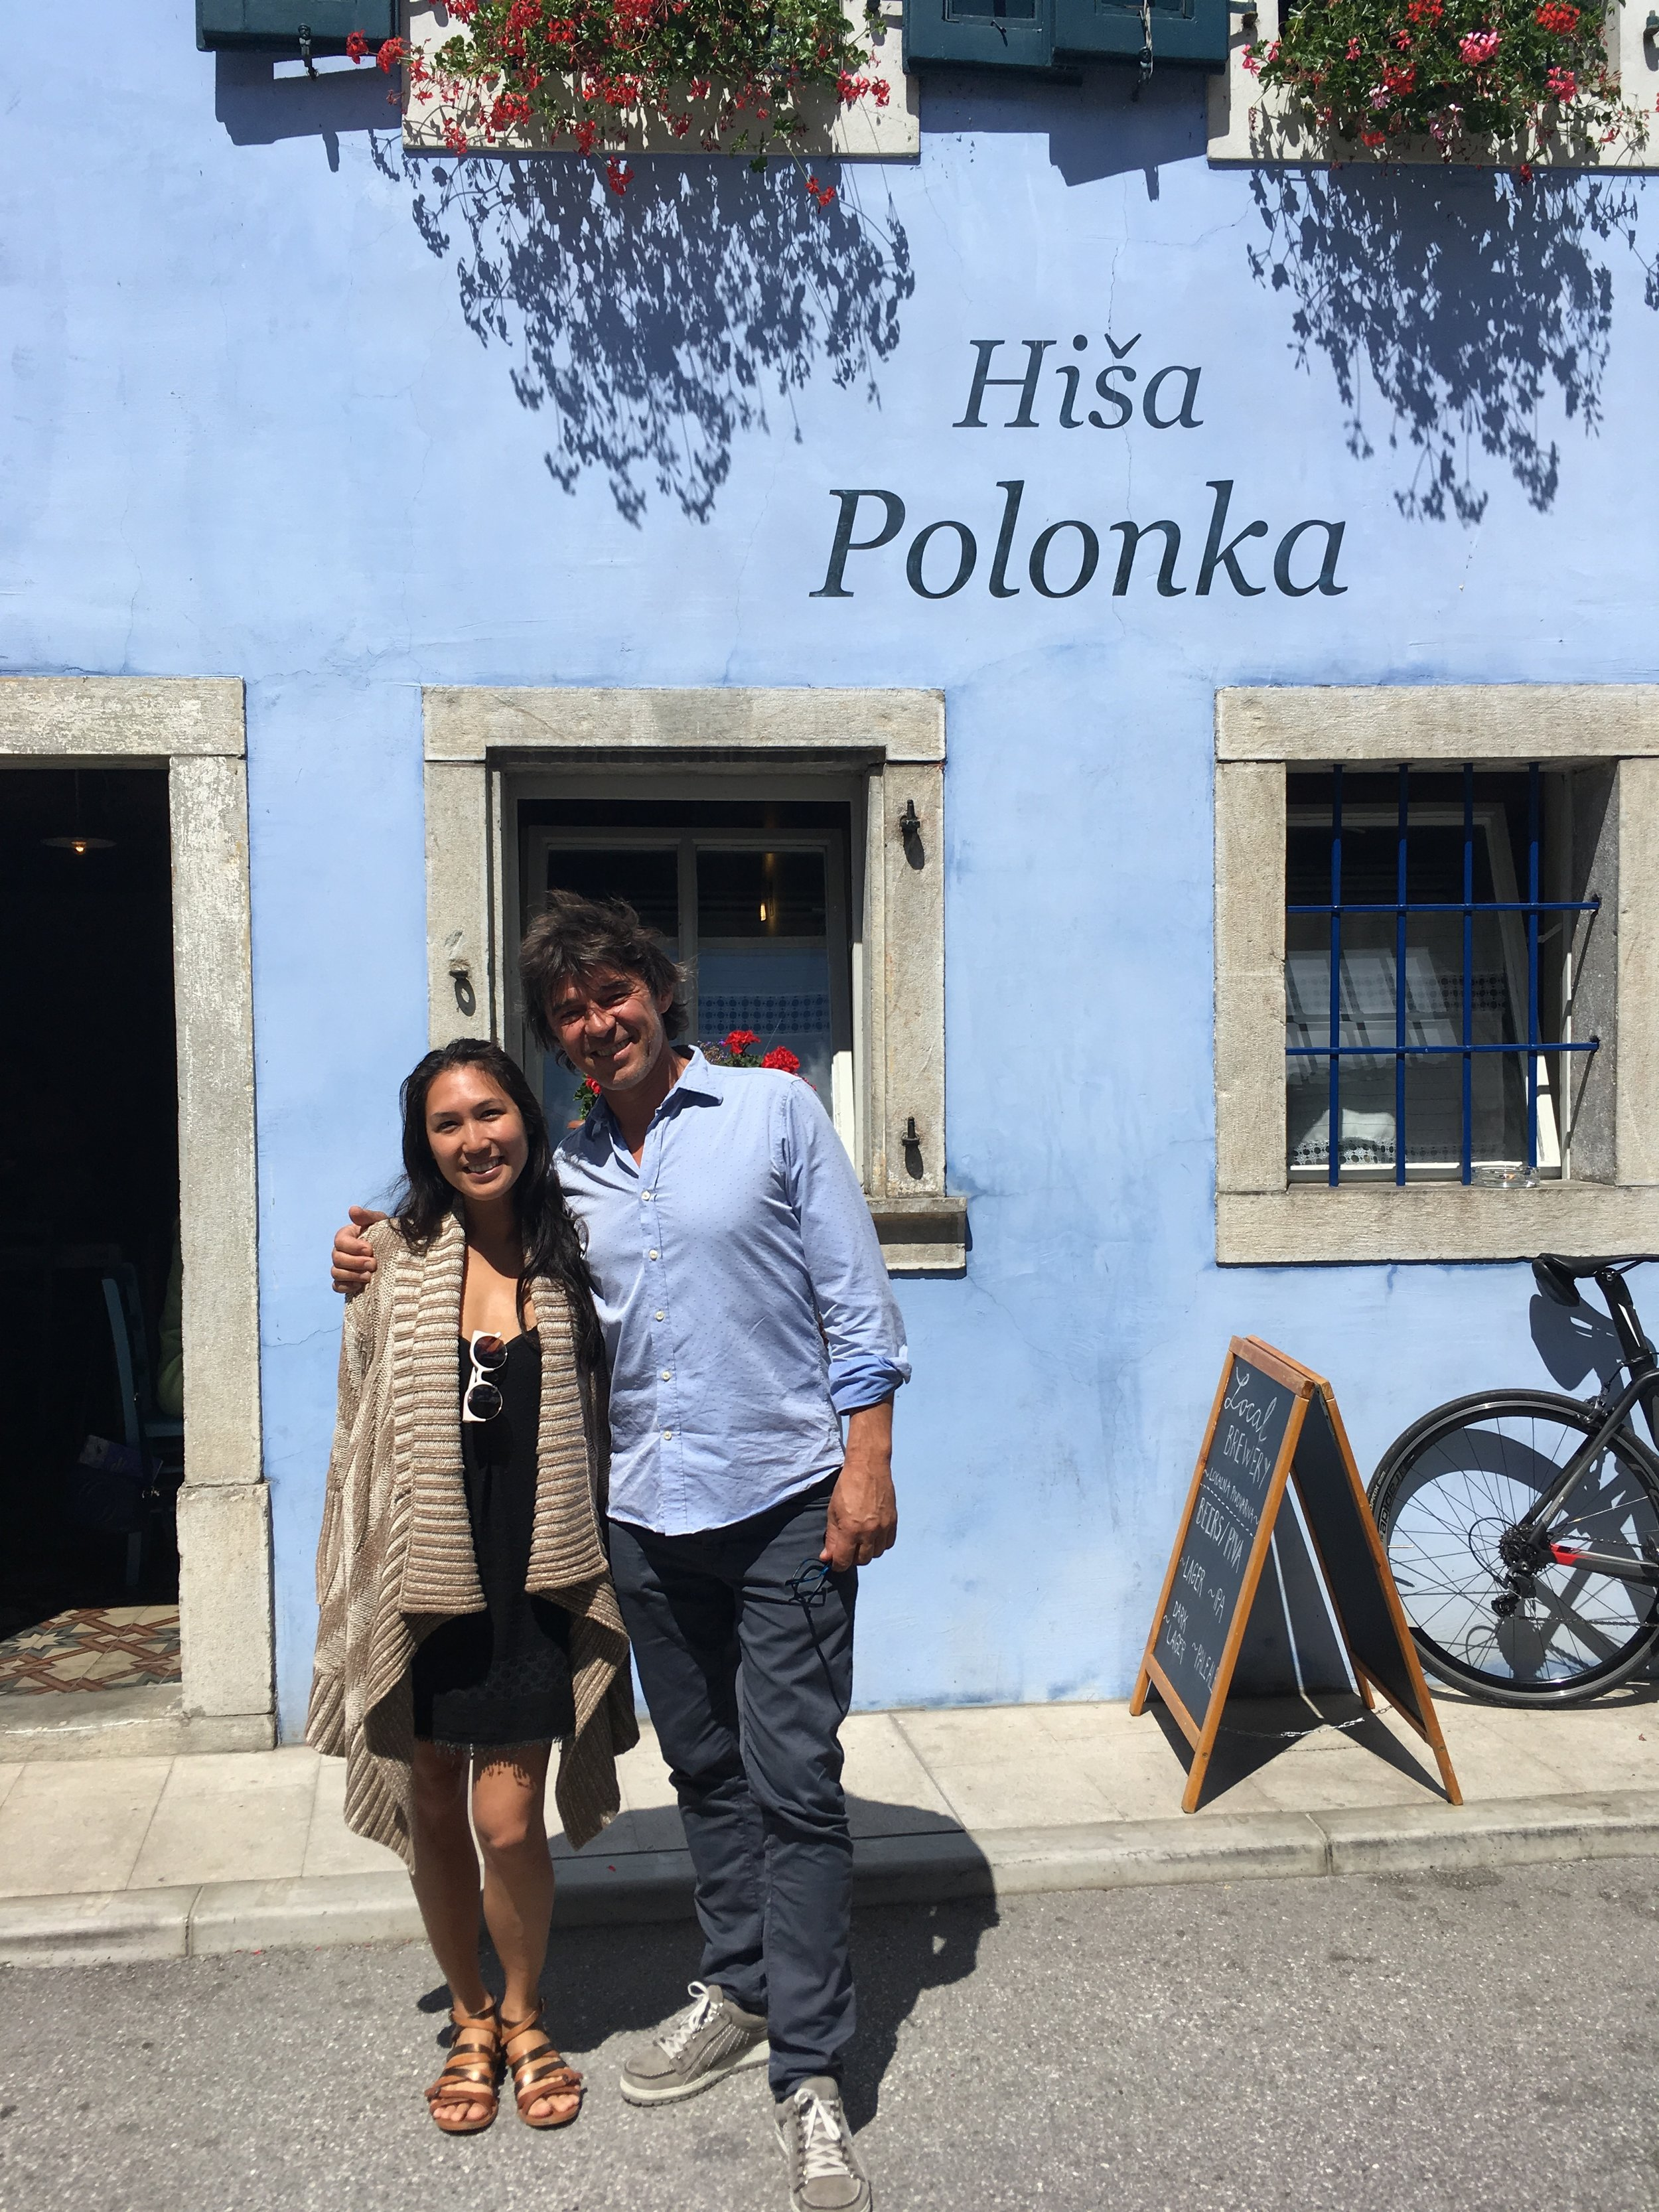 We ate at Valter's new beer pub and restaurant  Hisa Polonka .